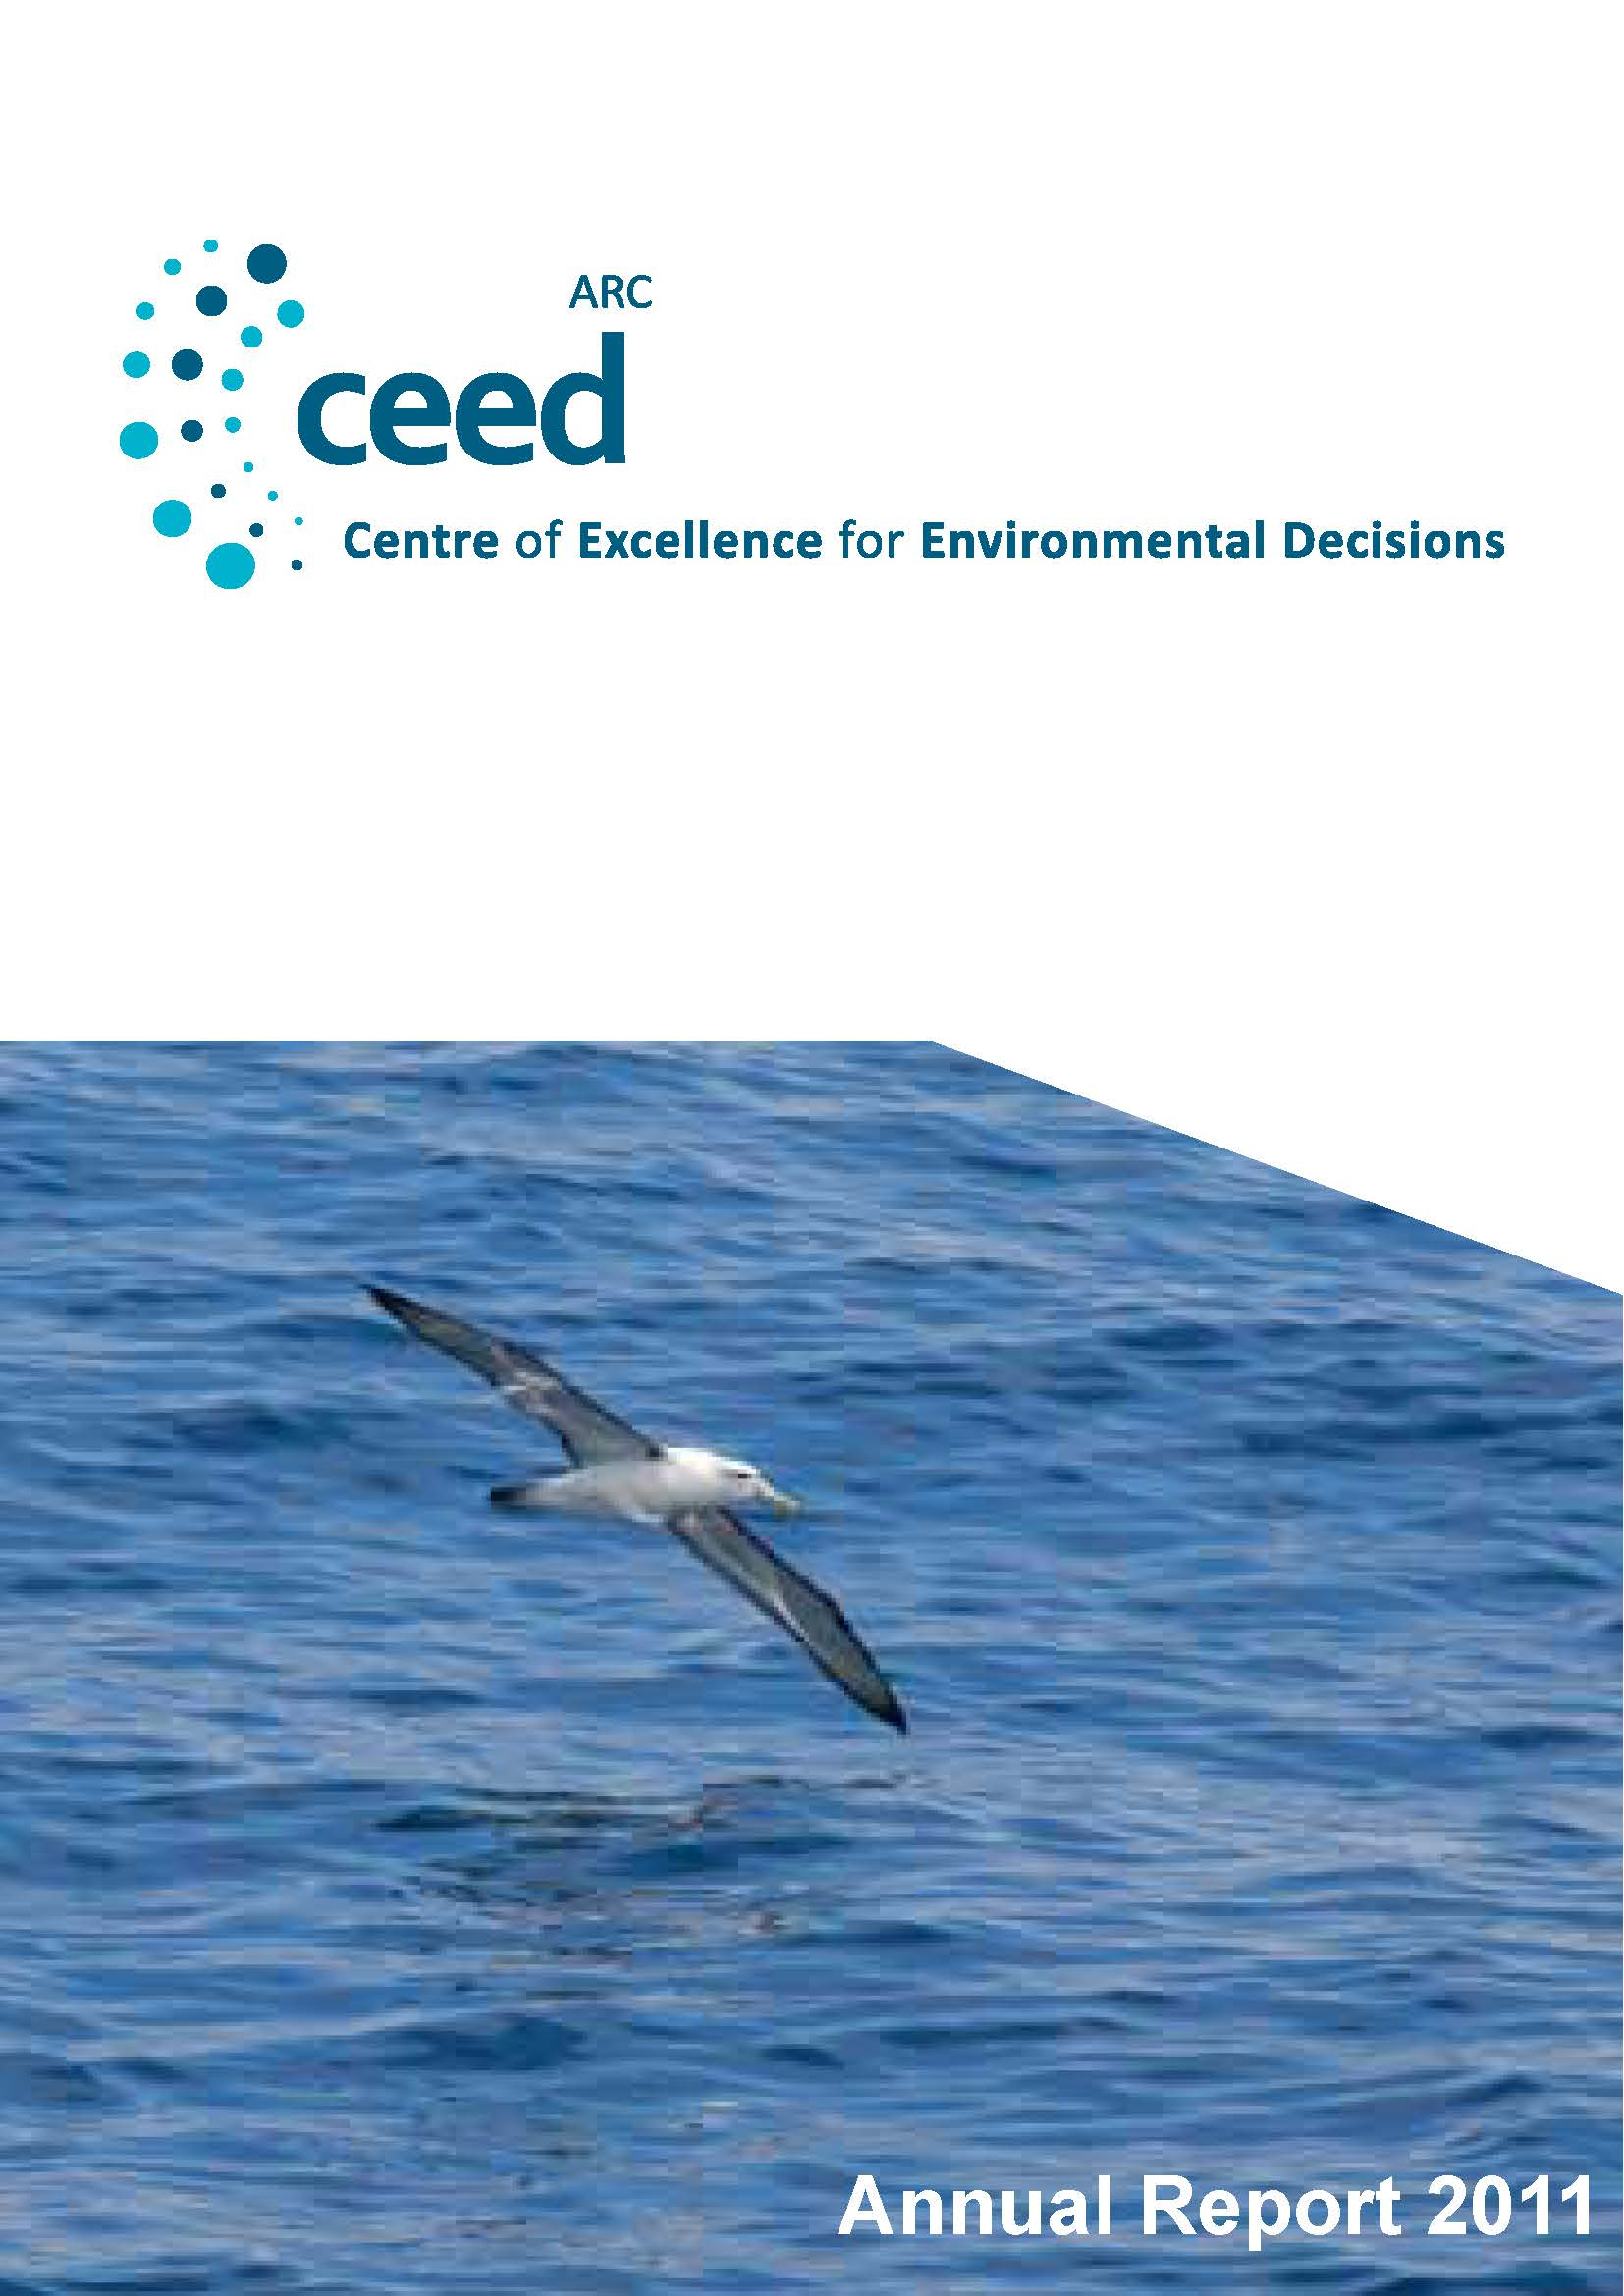 CEED ann report 2011 COVER ONLY